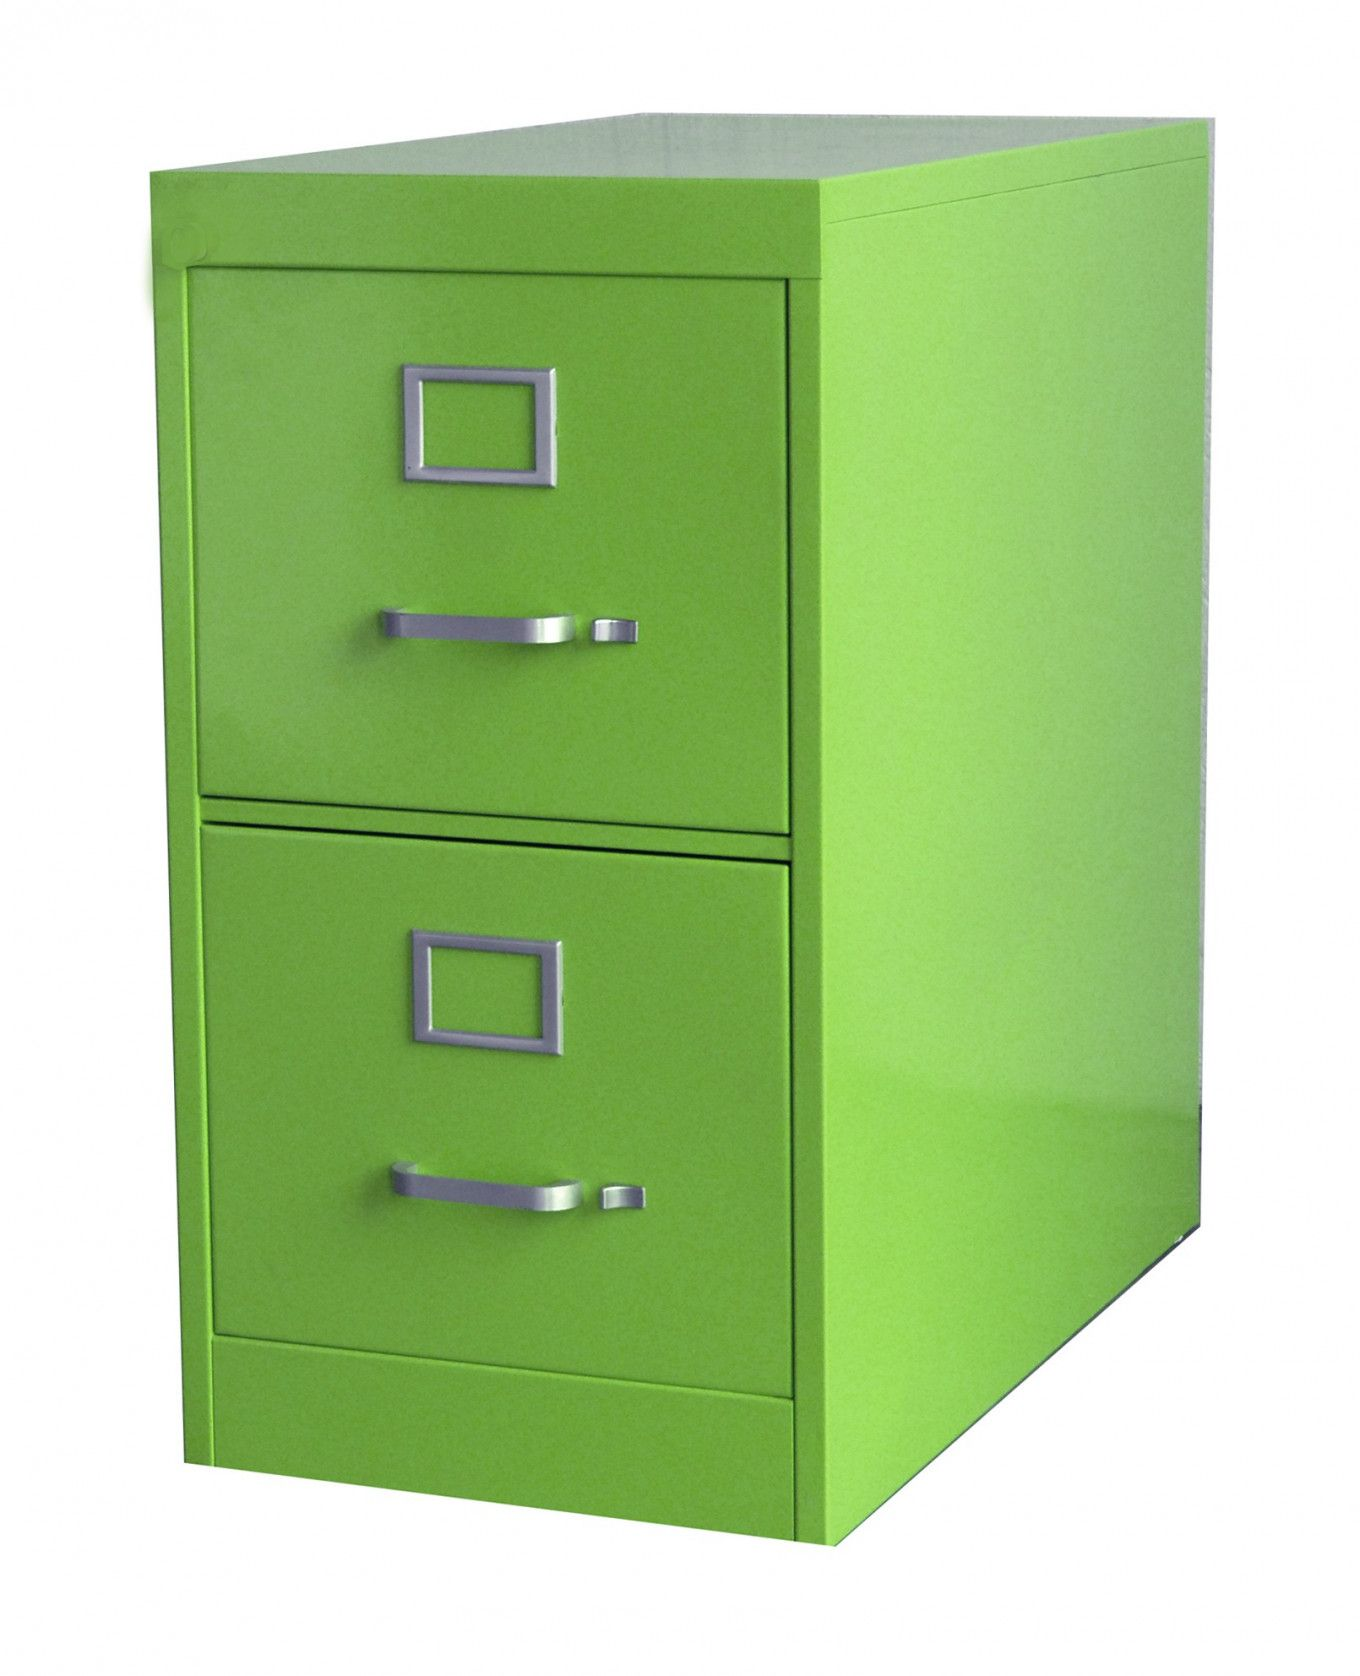 2019 2 Drawer Metal File Cabinet Small Kitchen Island Ideas With Seating Check More At Http Www Planetgr Filing Cabinet Metal Filing Cabinet Cabinet Repair